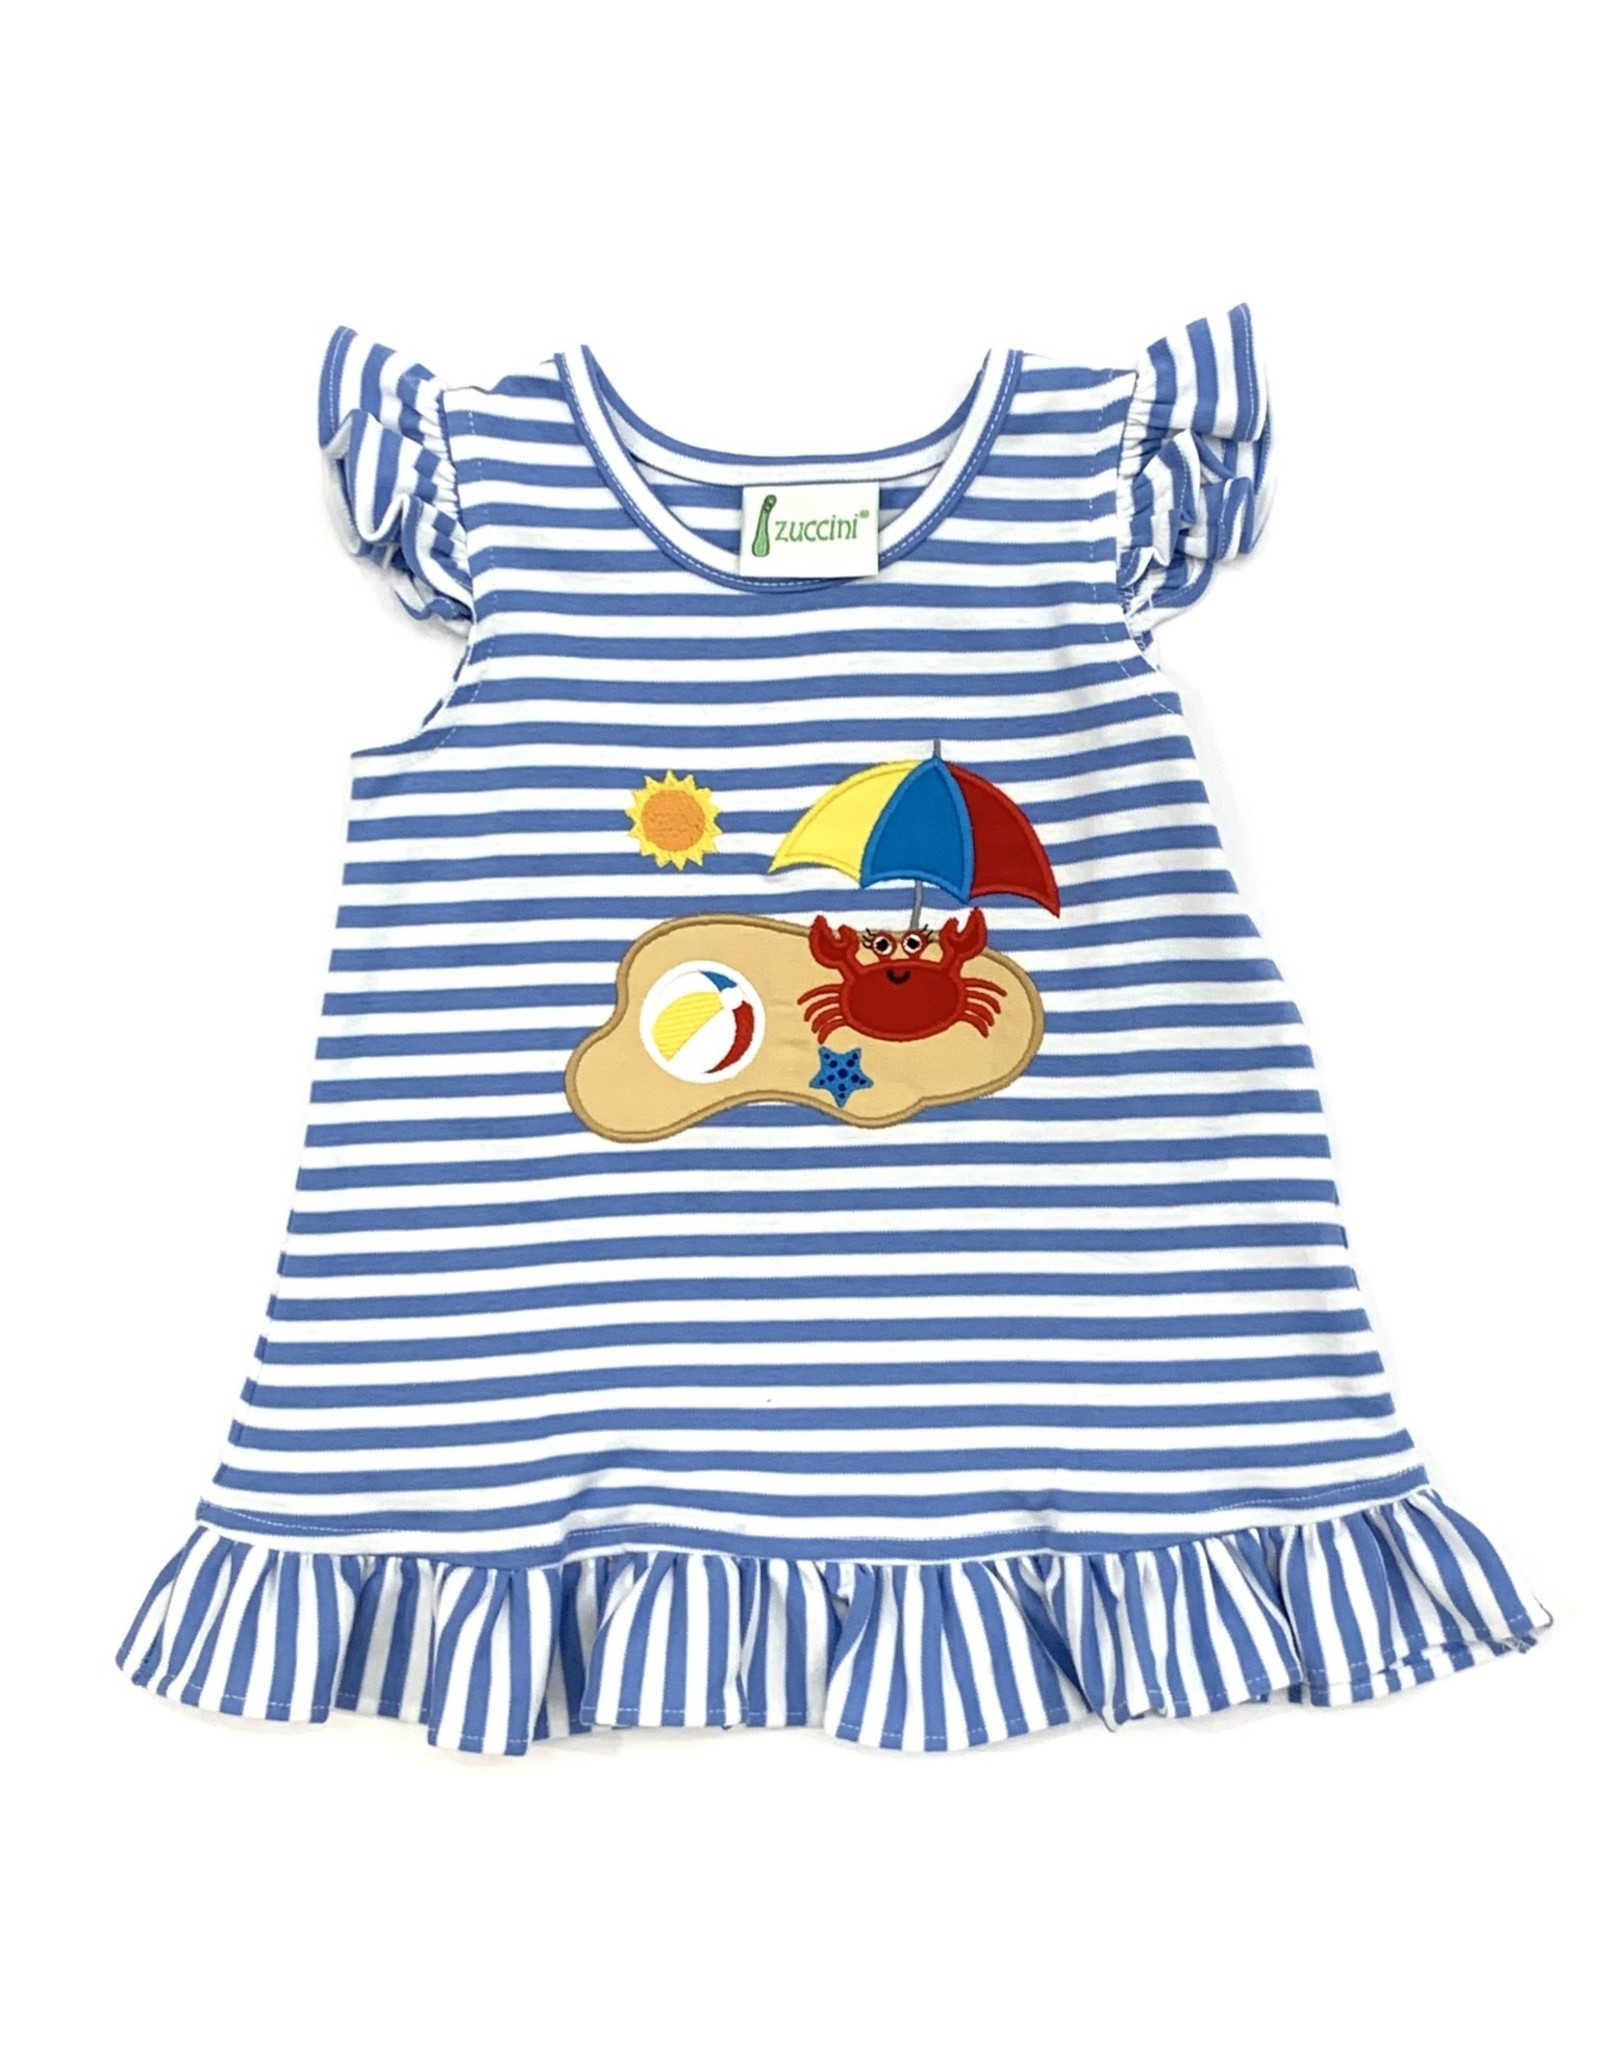 Zuccini Crab Ruffled Blue Stripe Party Dress